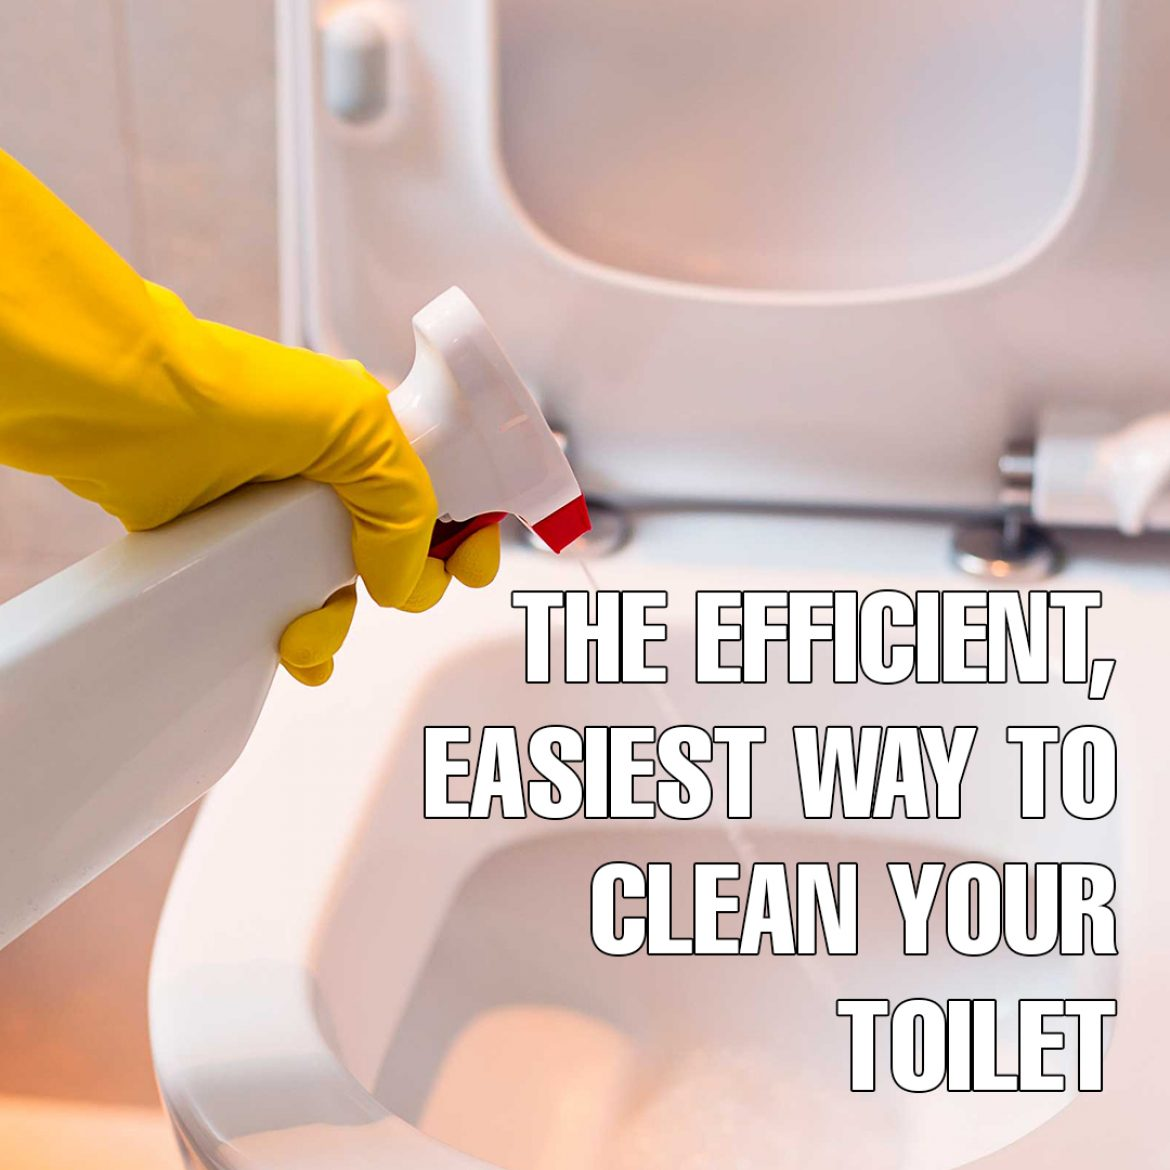 Toilets Deserve Some Cleaning Attention Too Though Most People Think That The Toilet Is A Ghastly C But Where Would We Be Without It